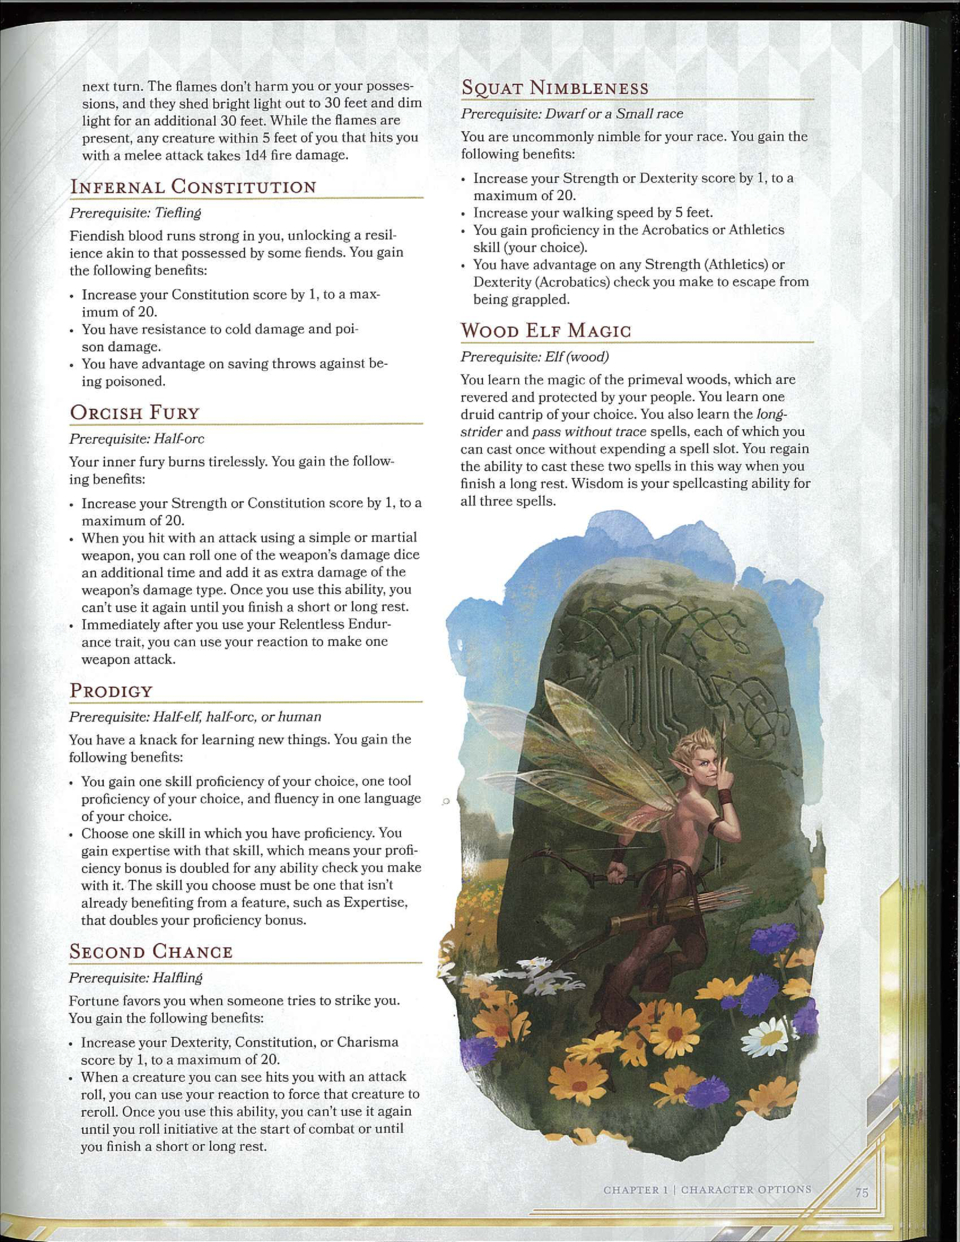 Xanatmar's Guid to everything : simplebooklet com